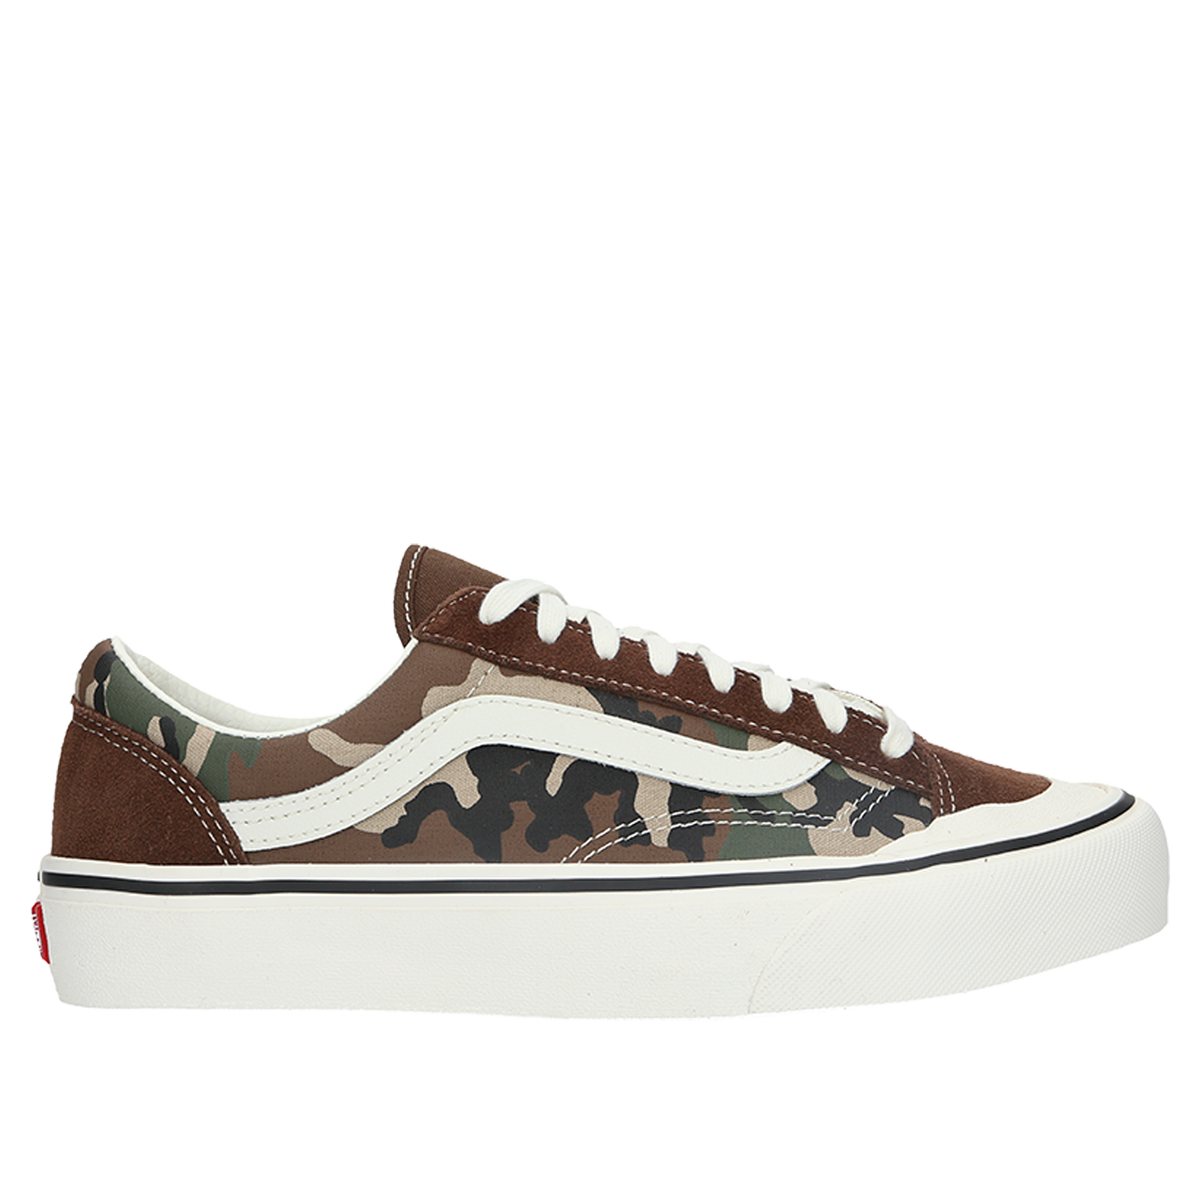 Vans Nomad Camo Style 36 SF  - XHIBITION